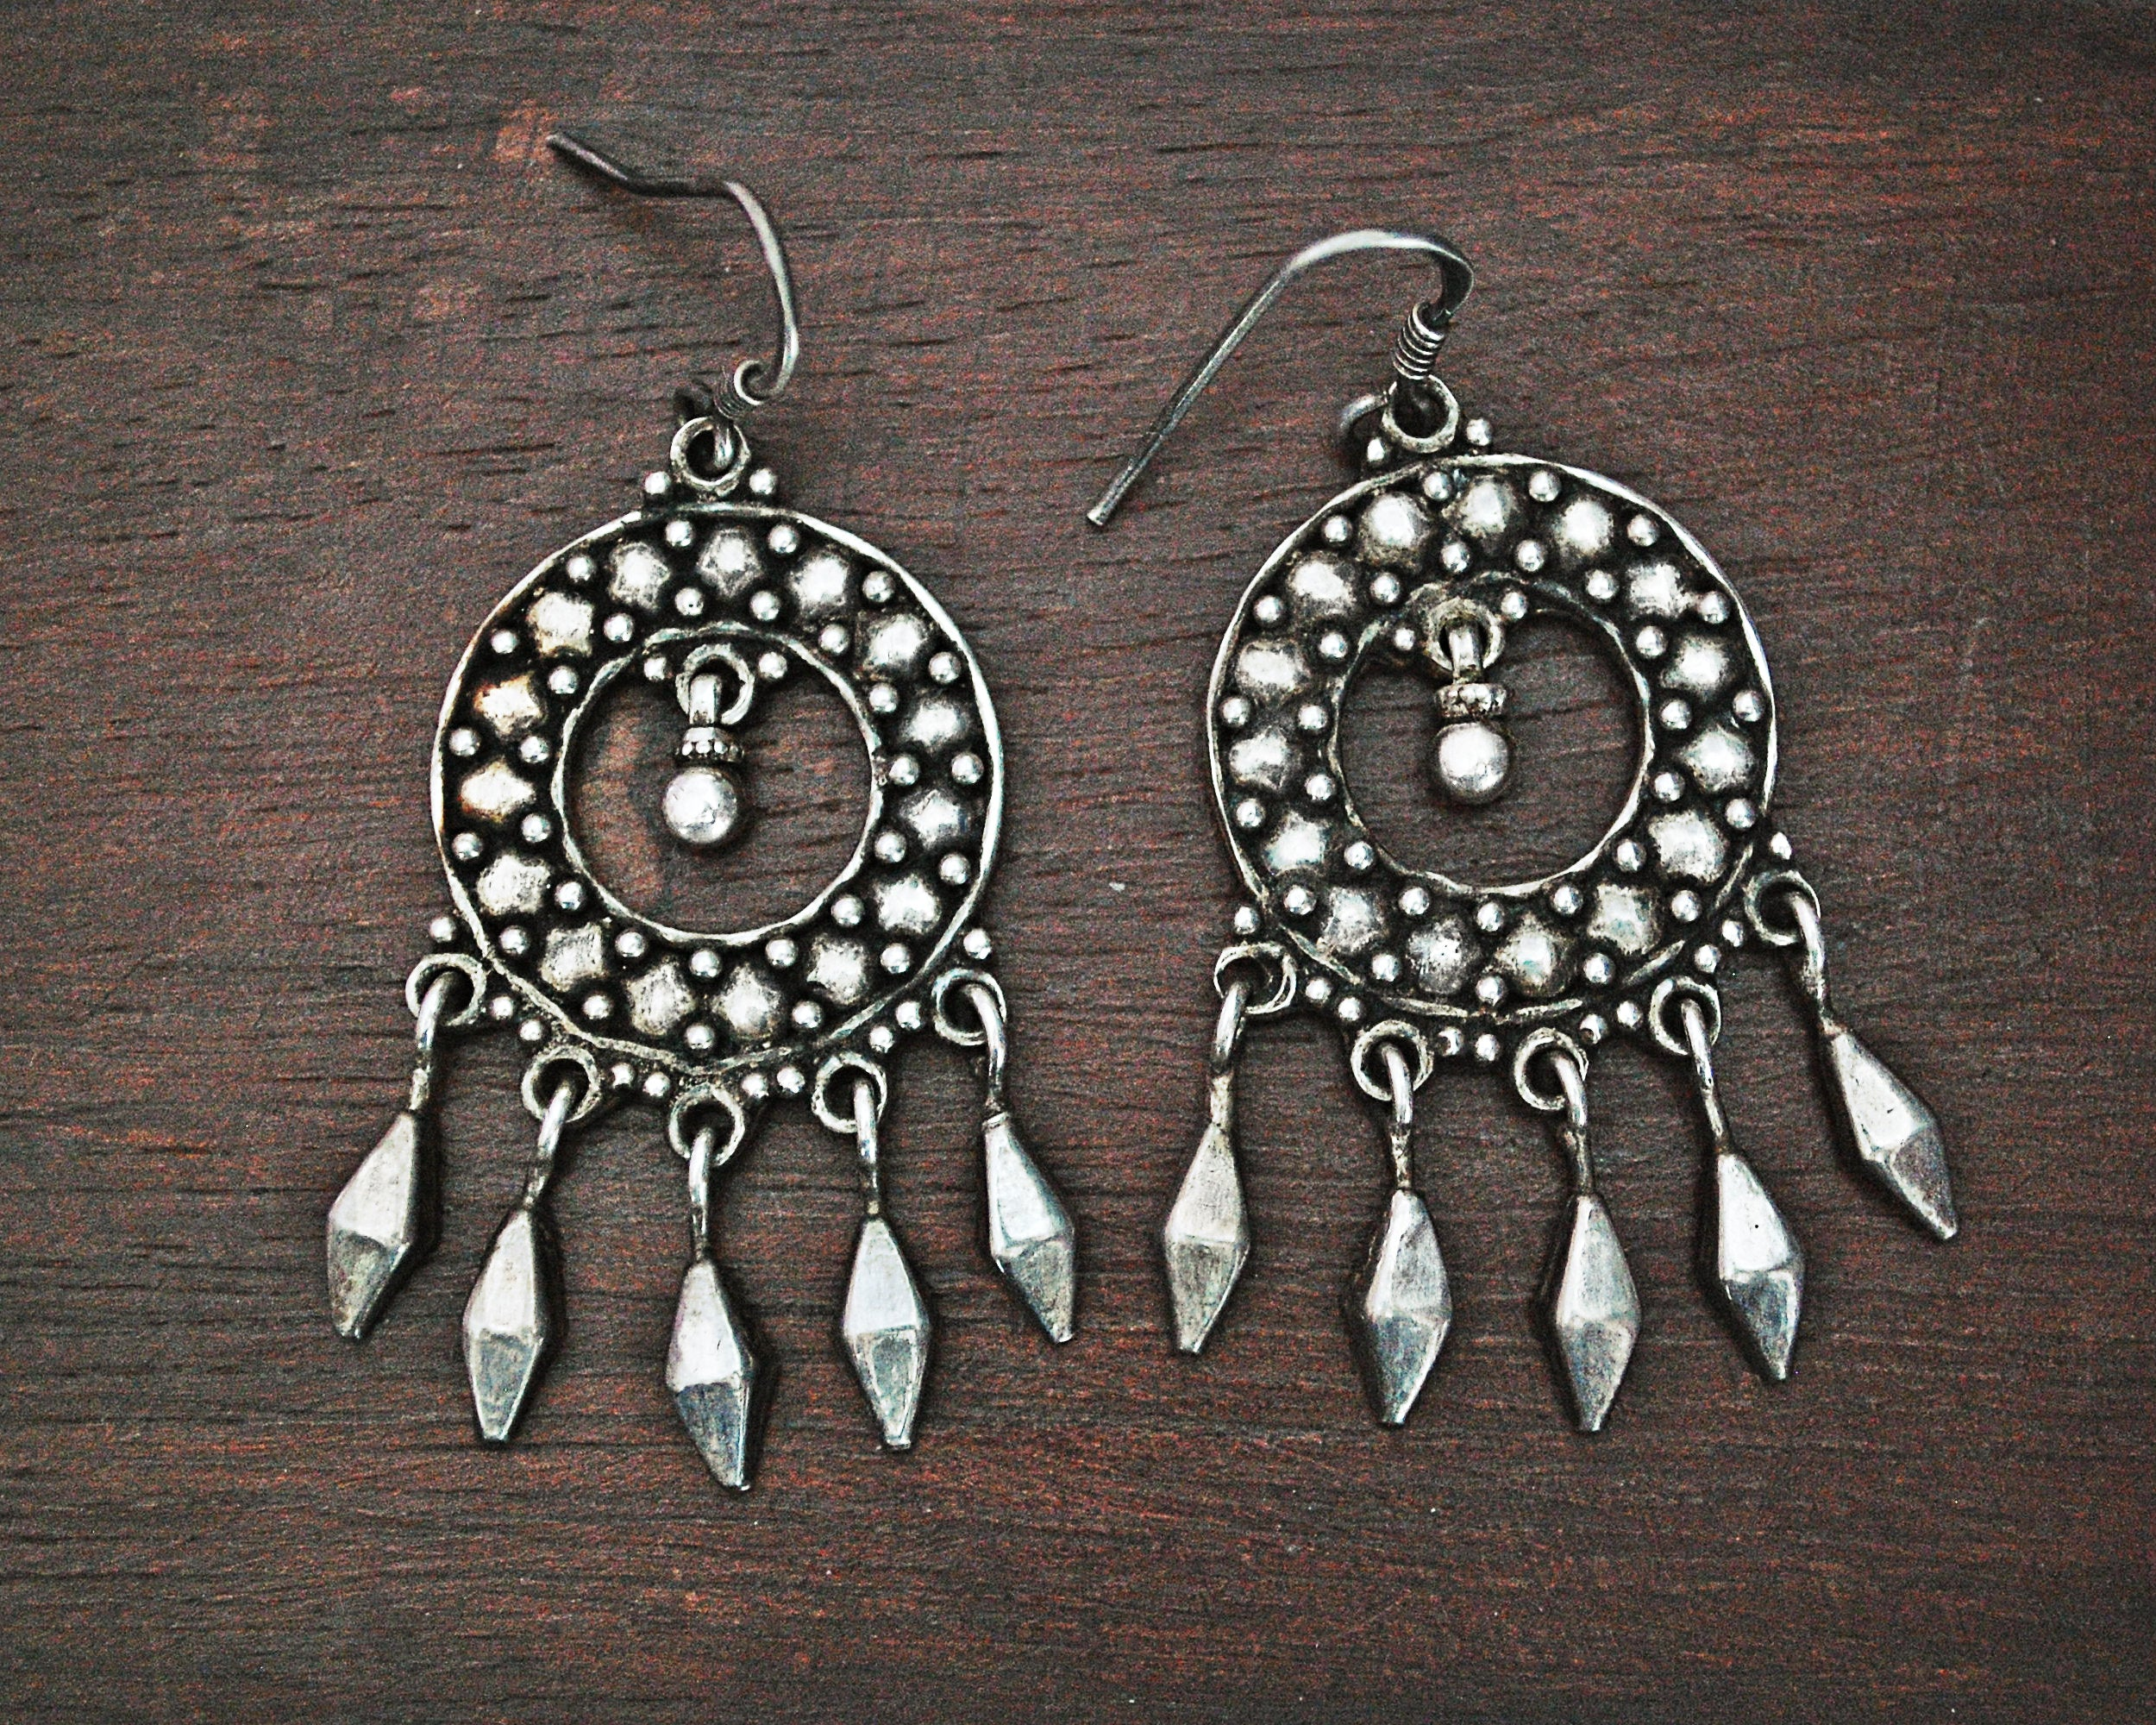 Rajasthani Silver Earrings with Tassels